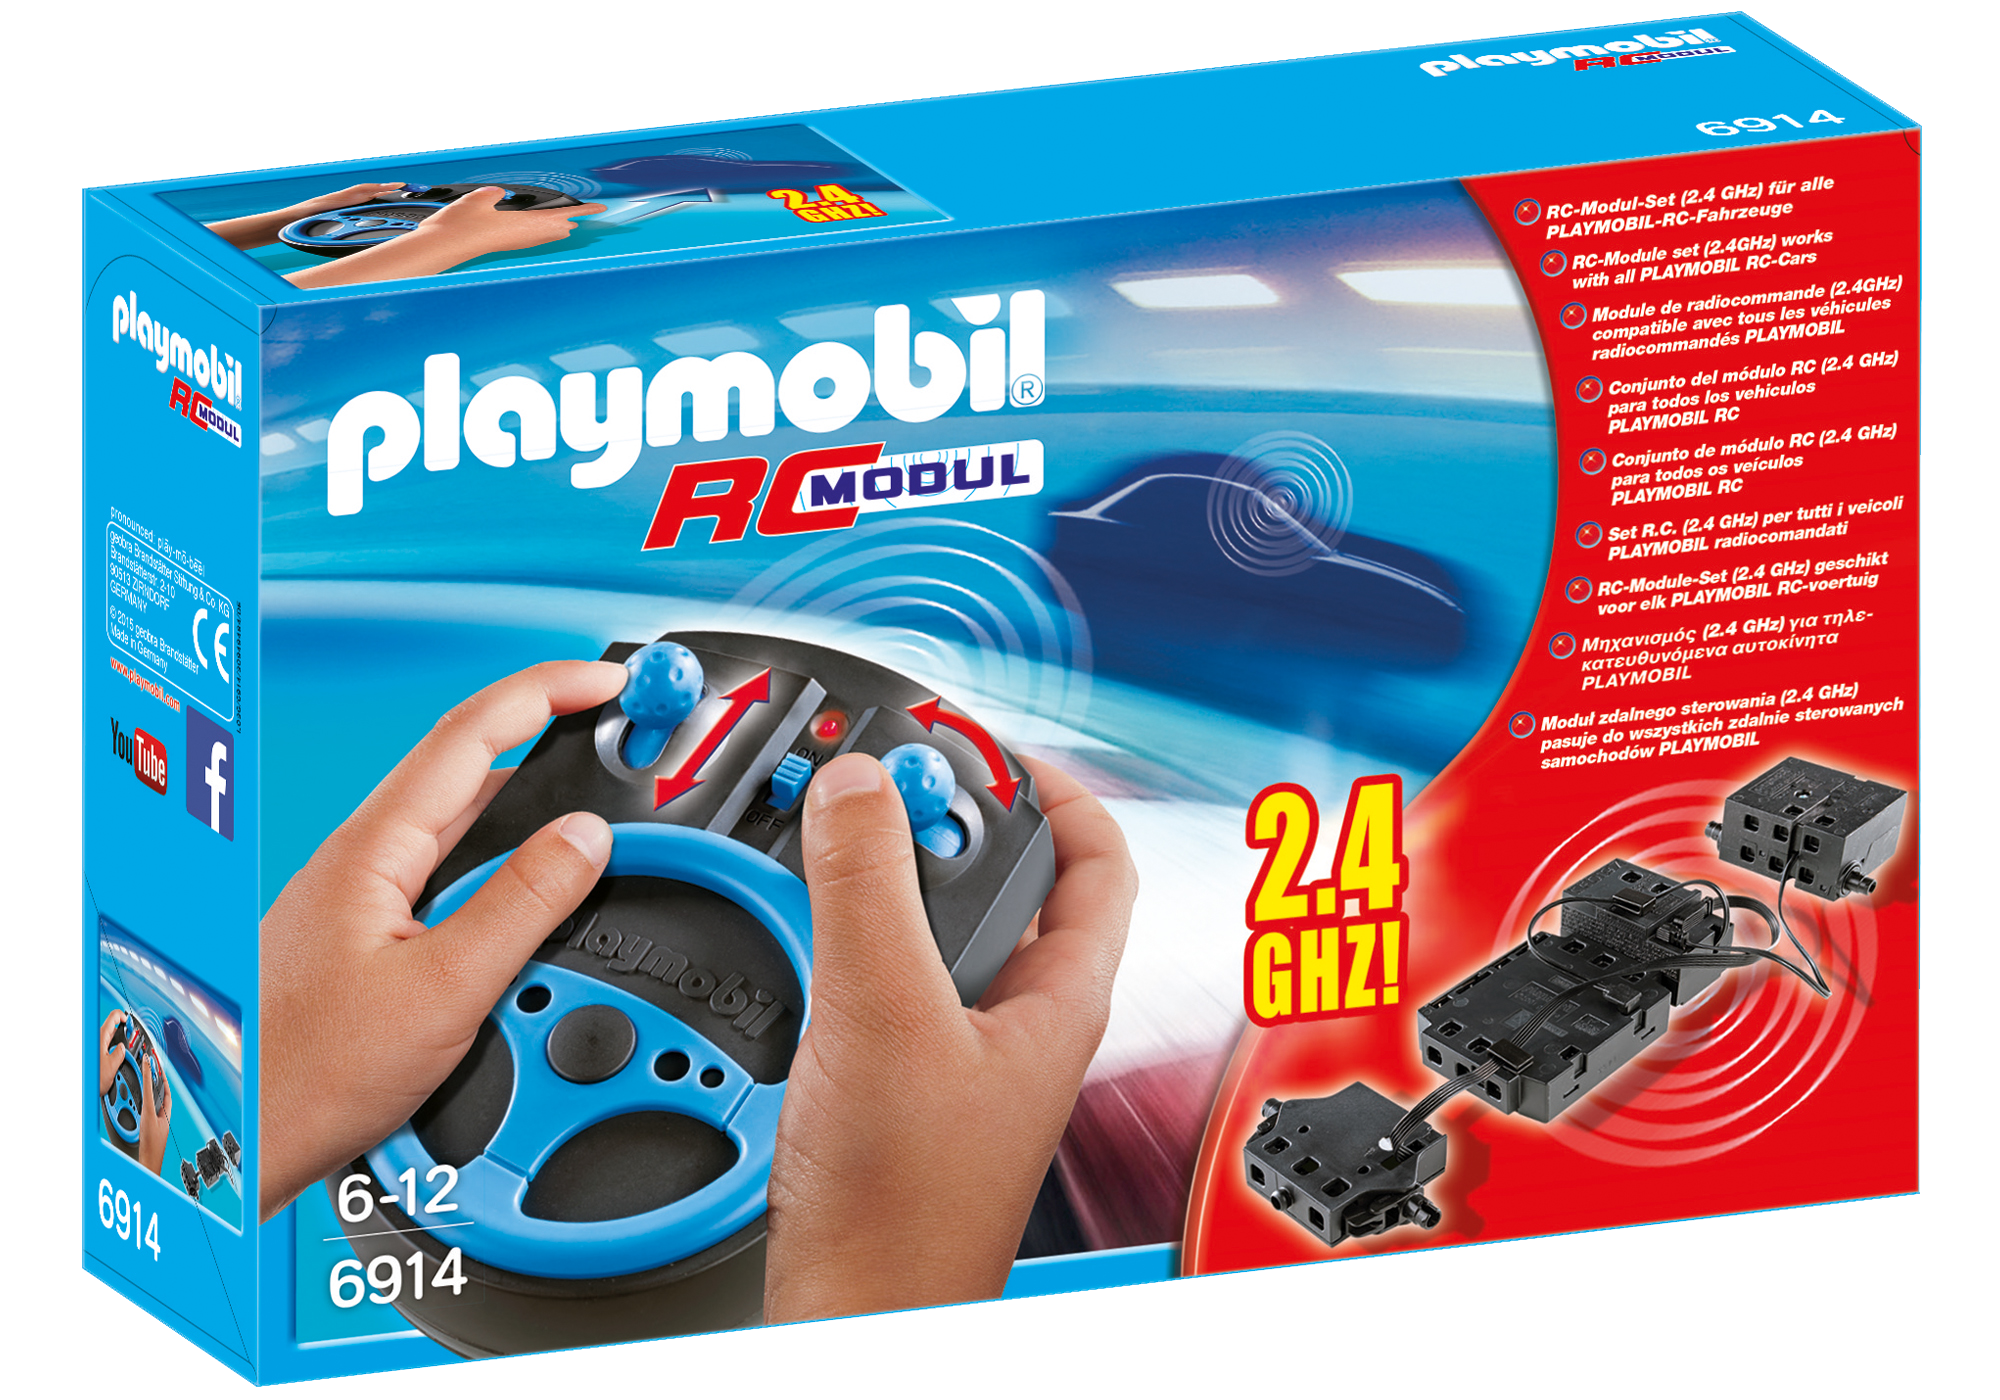 http://media.playmobil.com/i/playmobil/6914_product_box_front/RC Moduł Plus Set